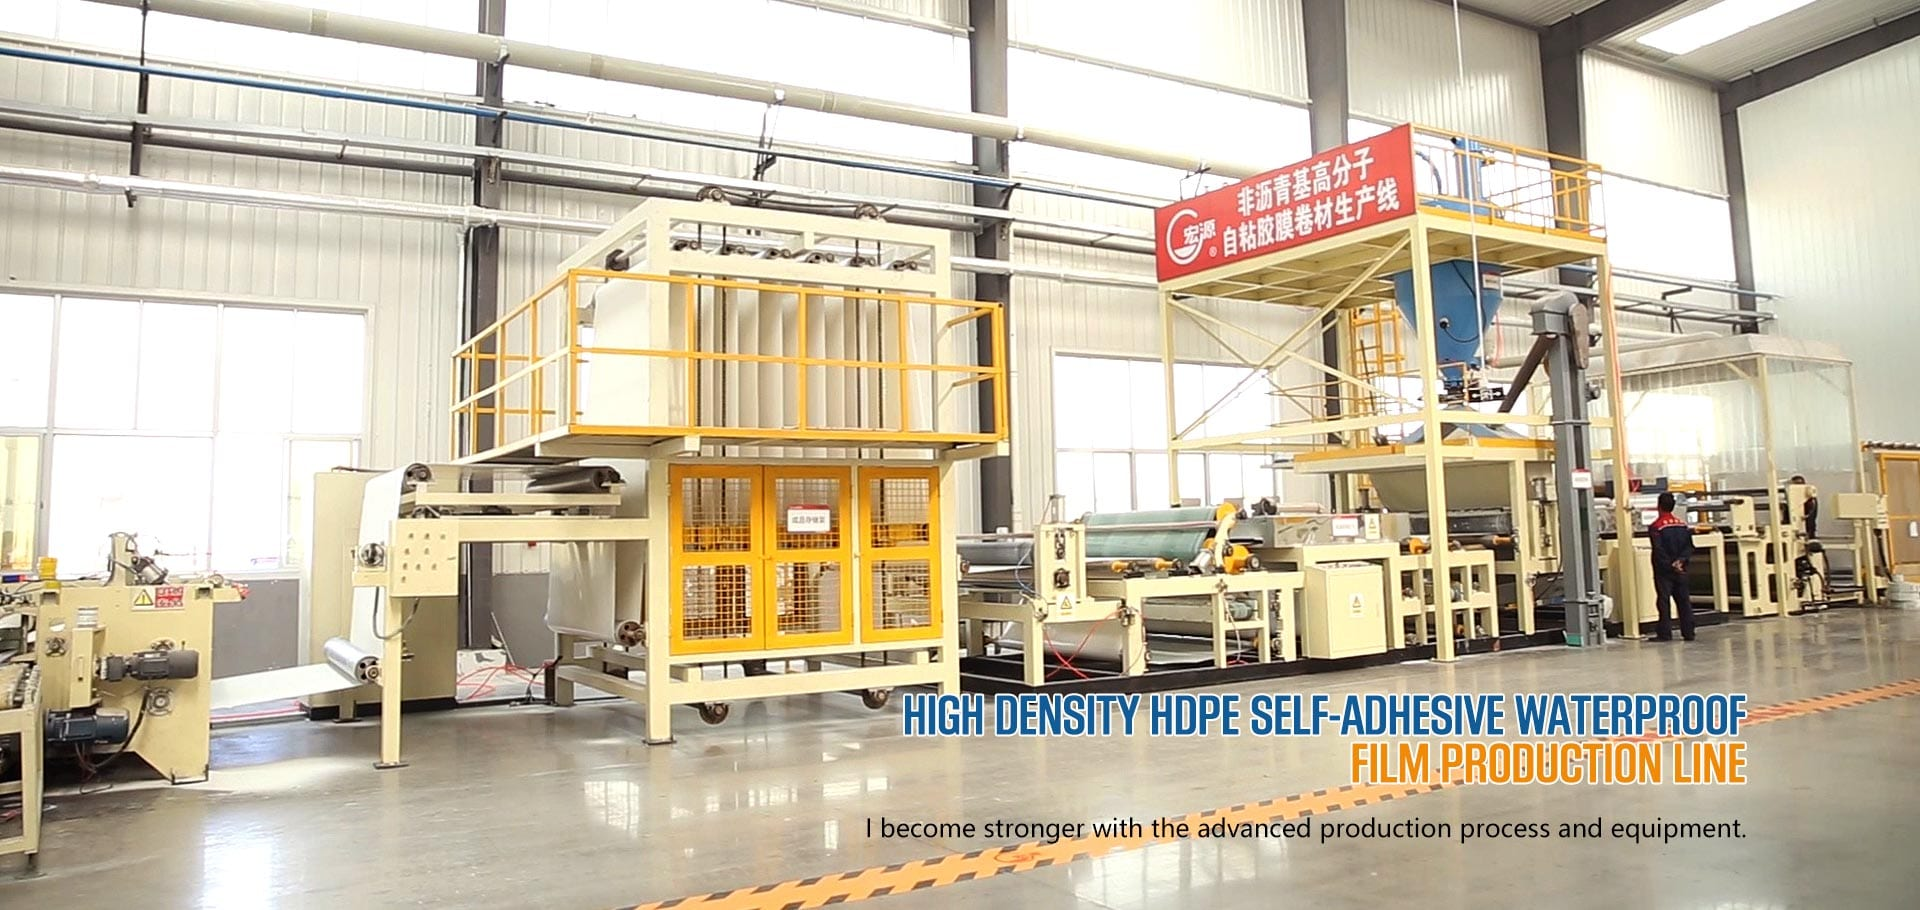 High density HDPE self-adhesive waterproof  film production line